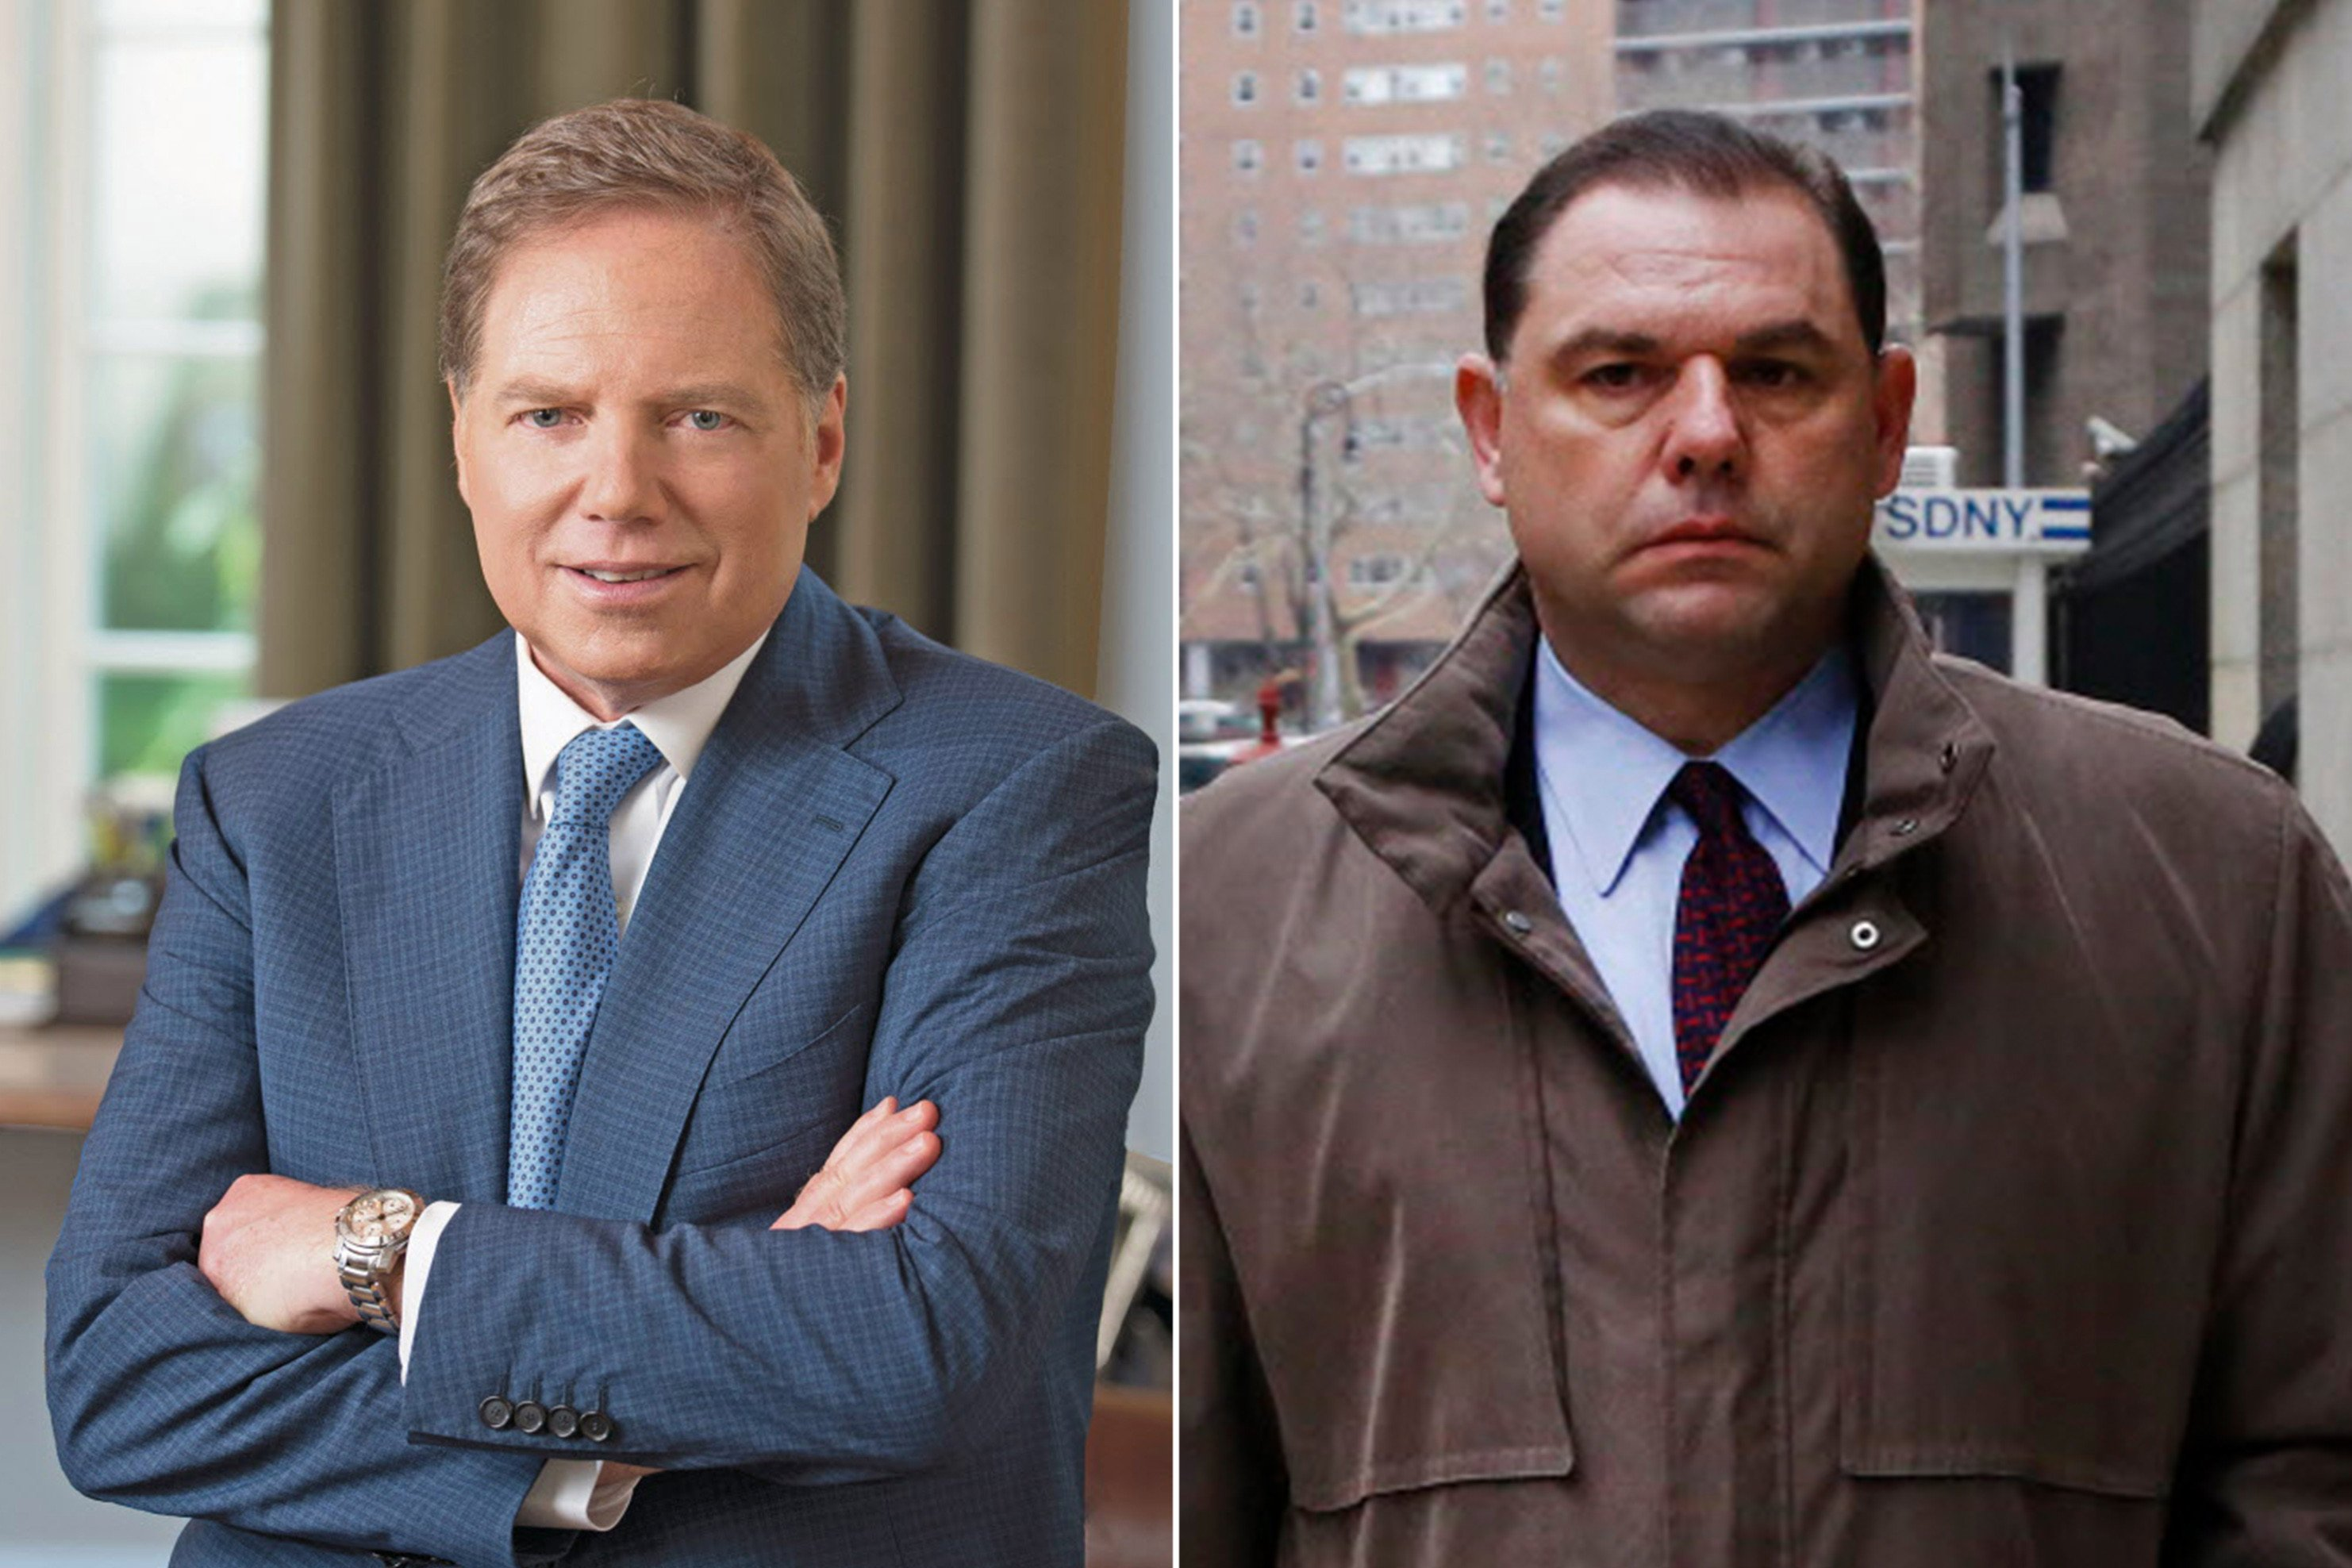 New top prosecutor in court for corruption trial of ex-Cuomo aide